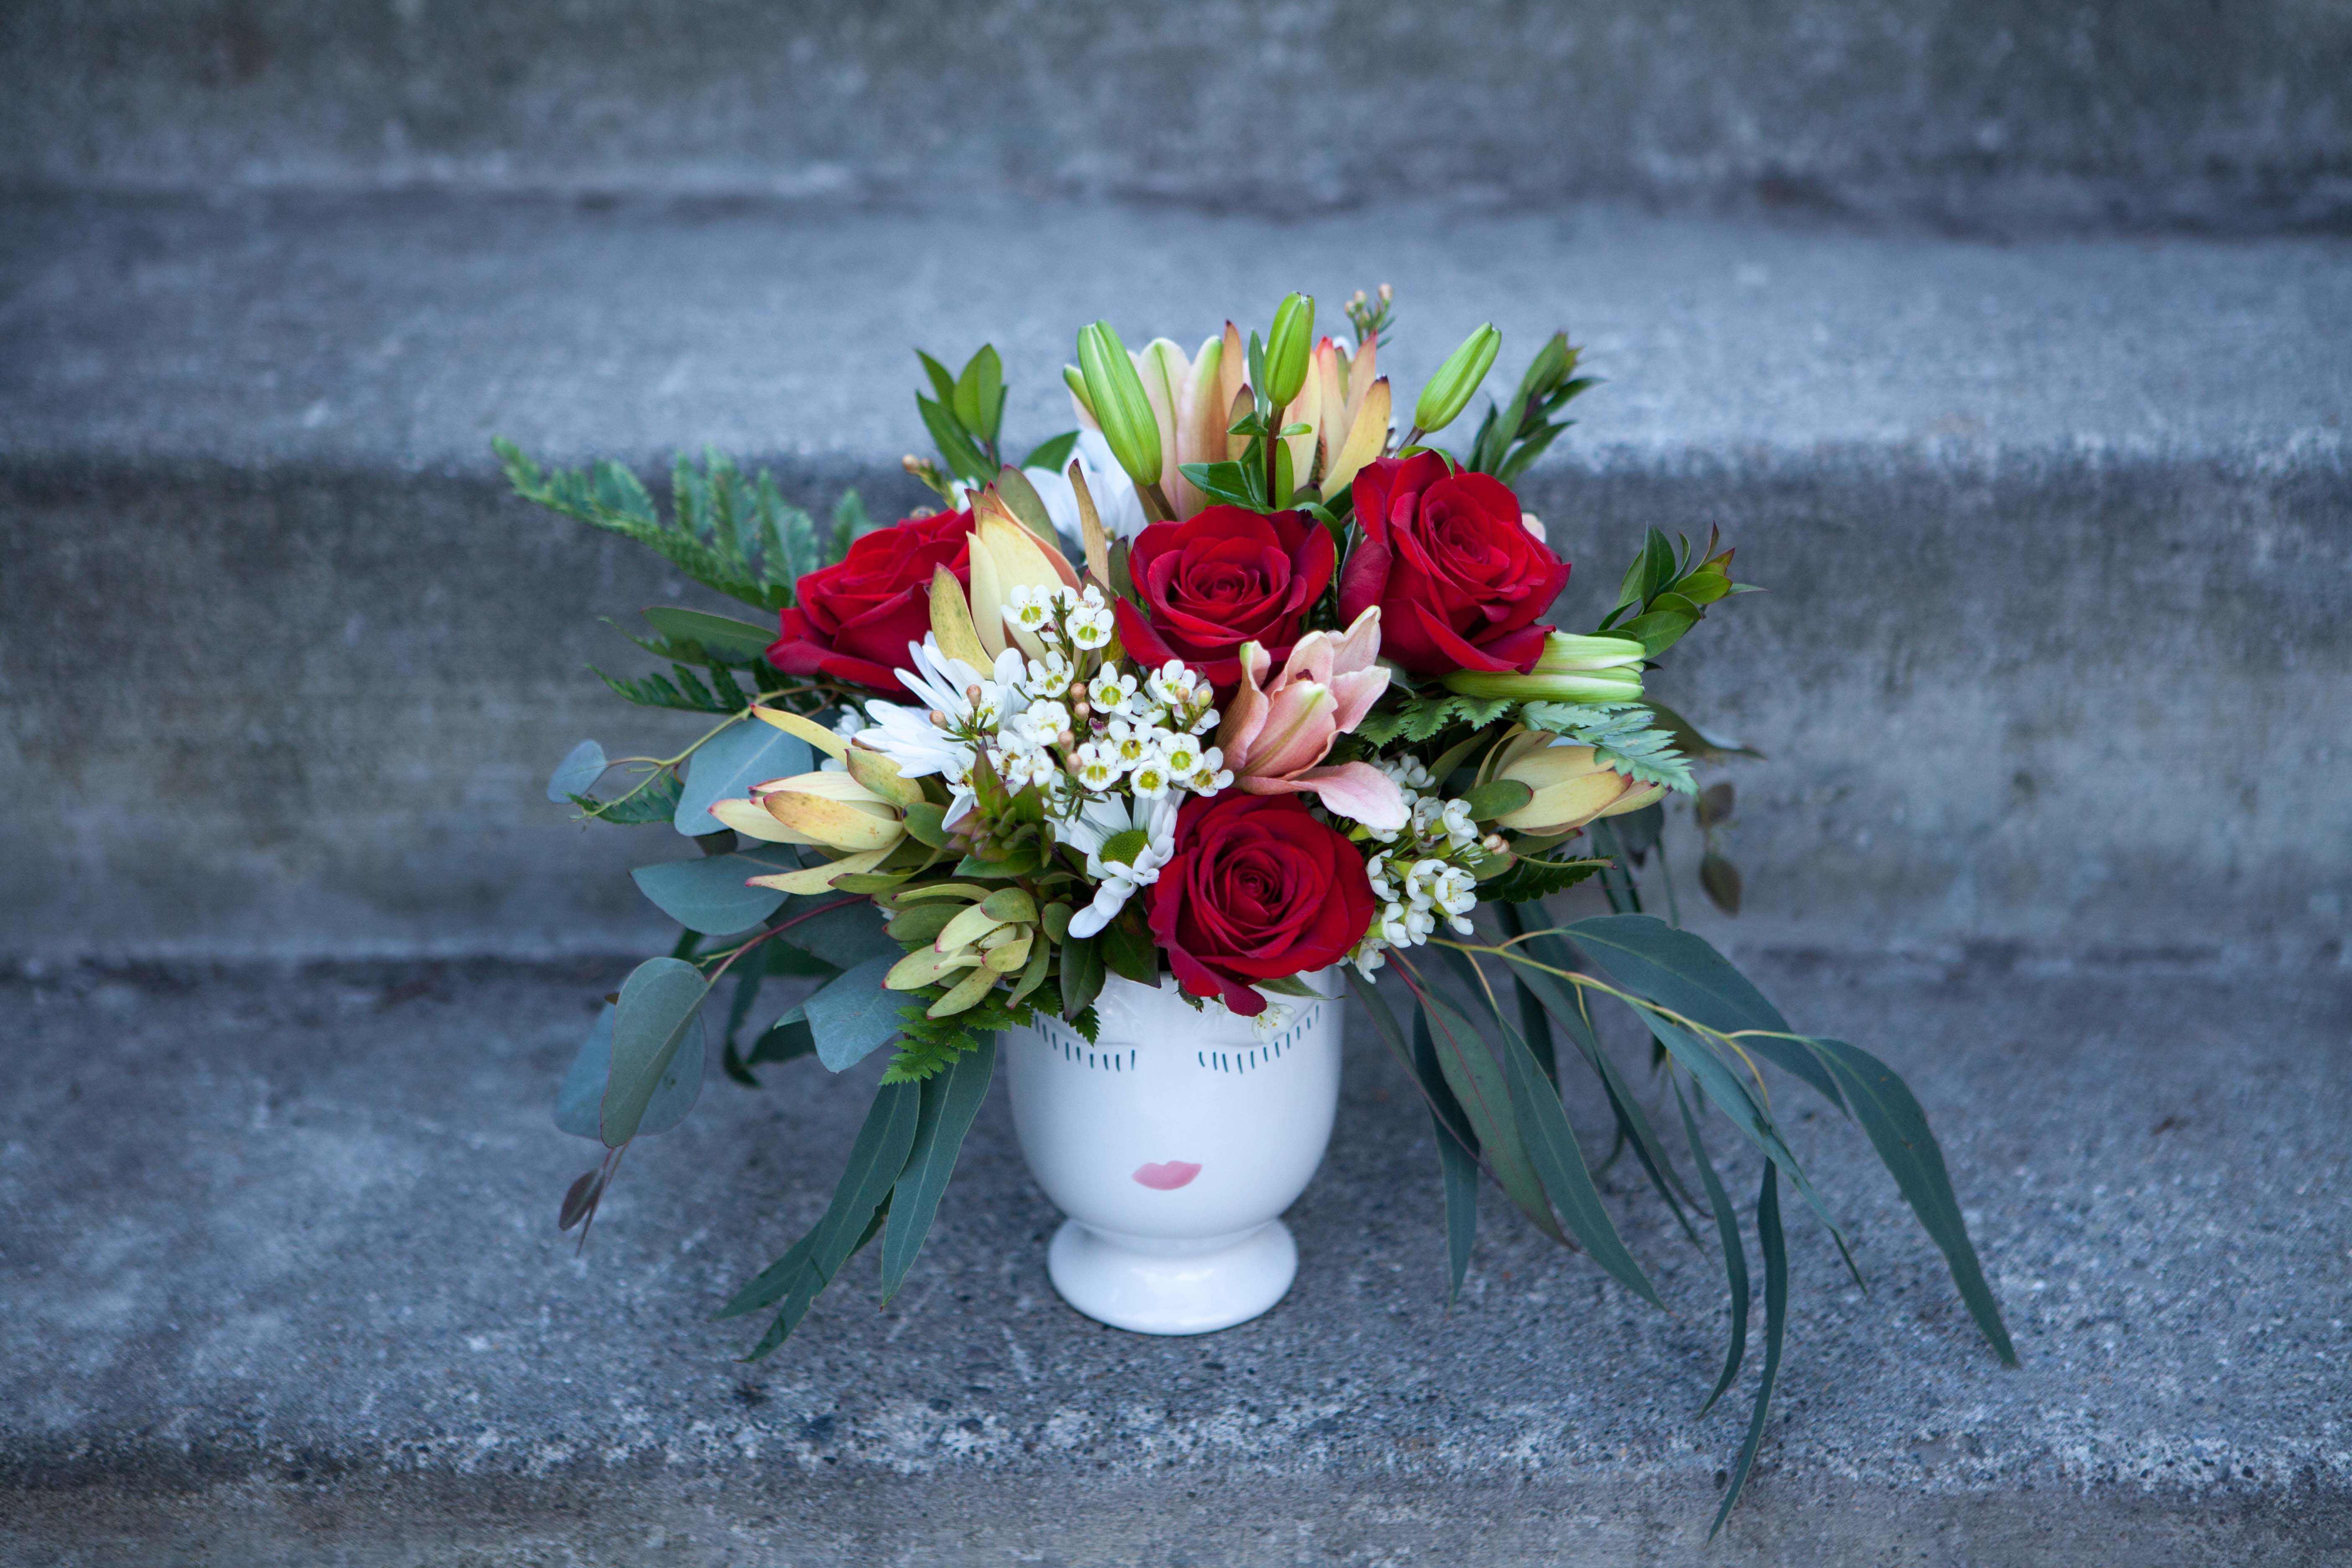 Order one-of-a-kind fresh floral arrangements for delivery in the Anchorage area from Paper Peony!